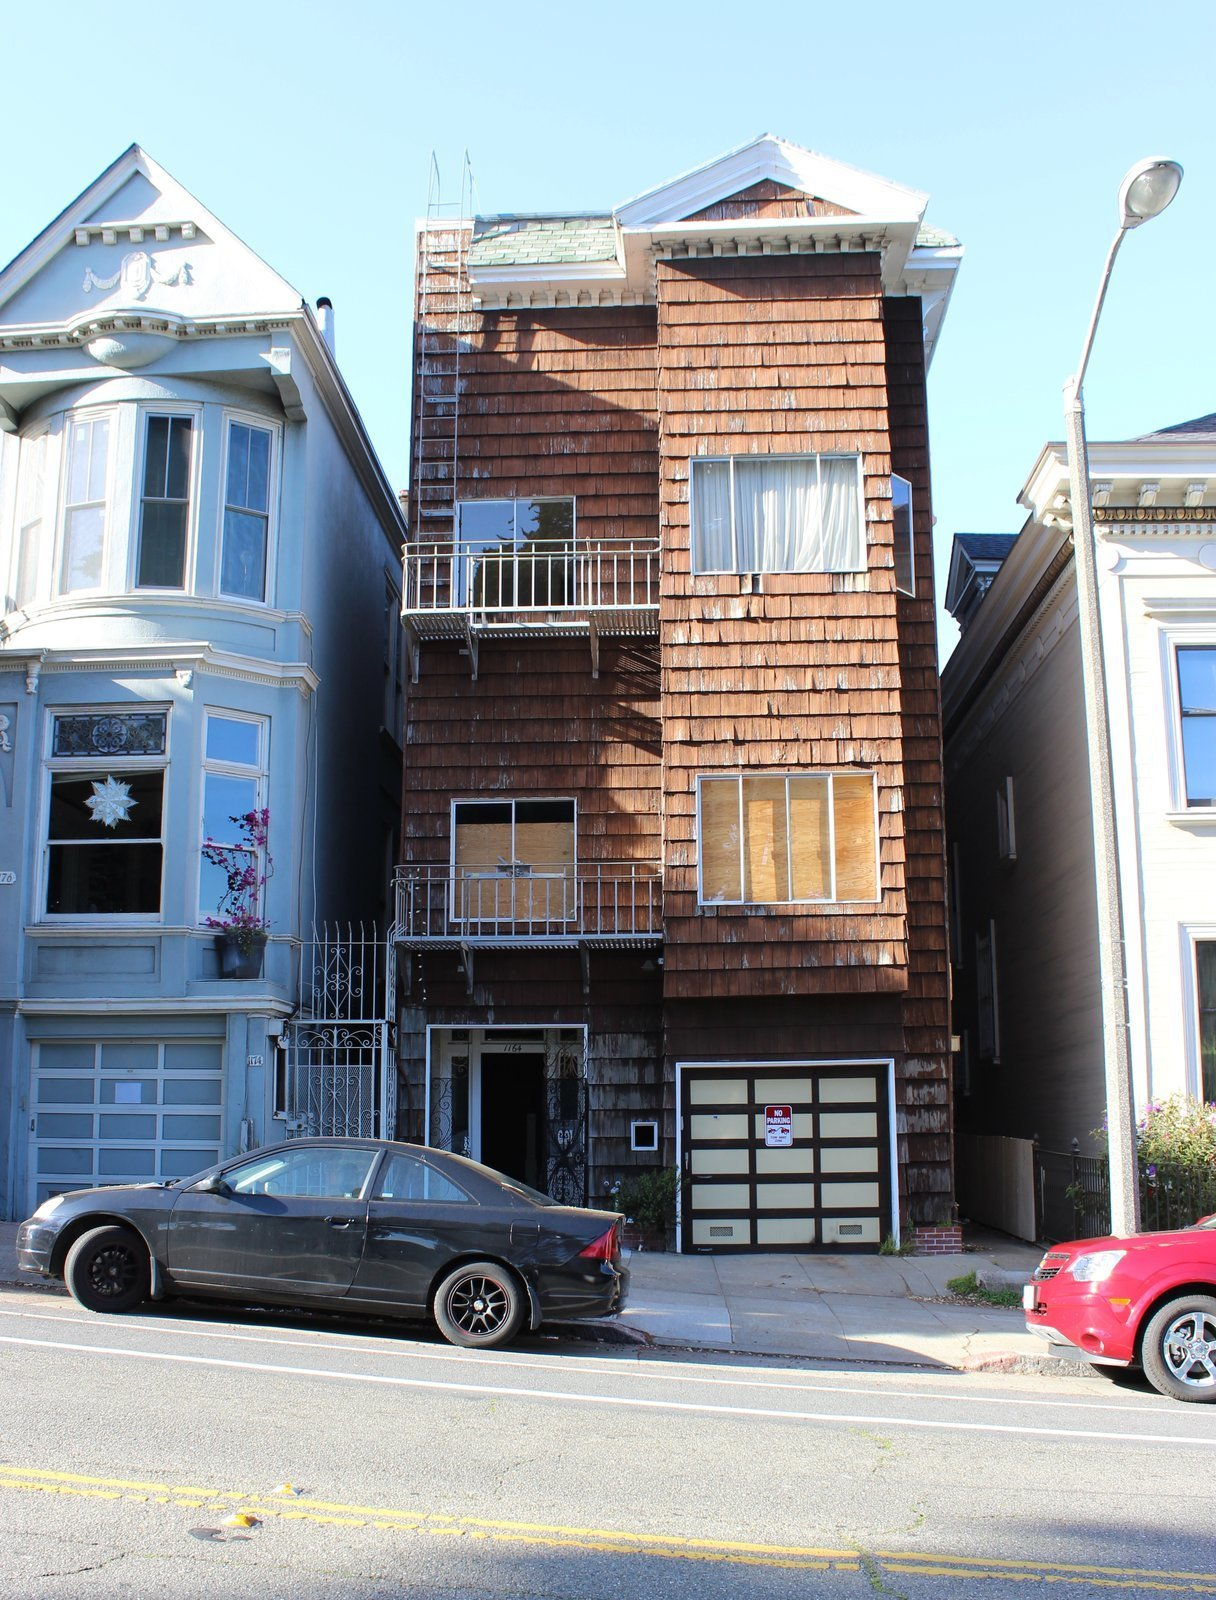 Before: Alamo Square Residence Exterior with worn and ruined brown wood shingles as siding and gable and hipped rooflines with faded green shingle roofing